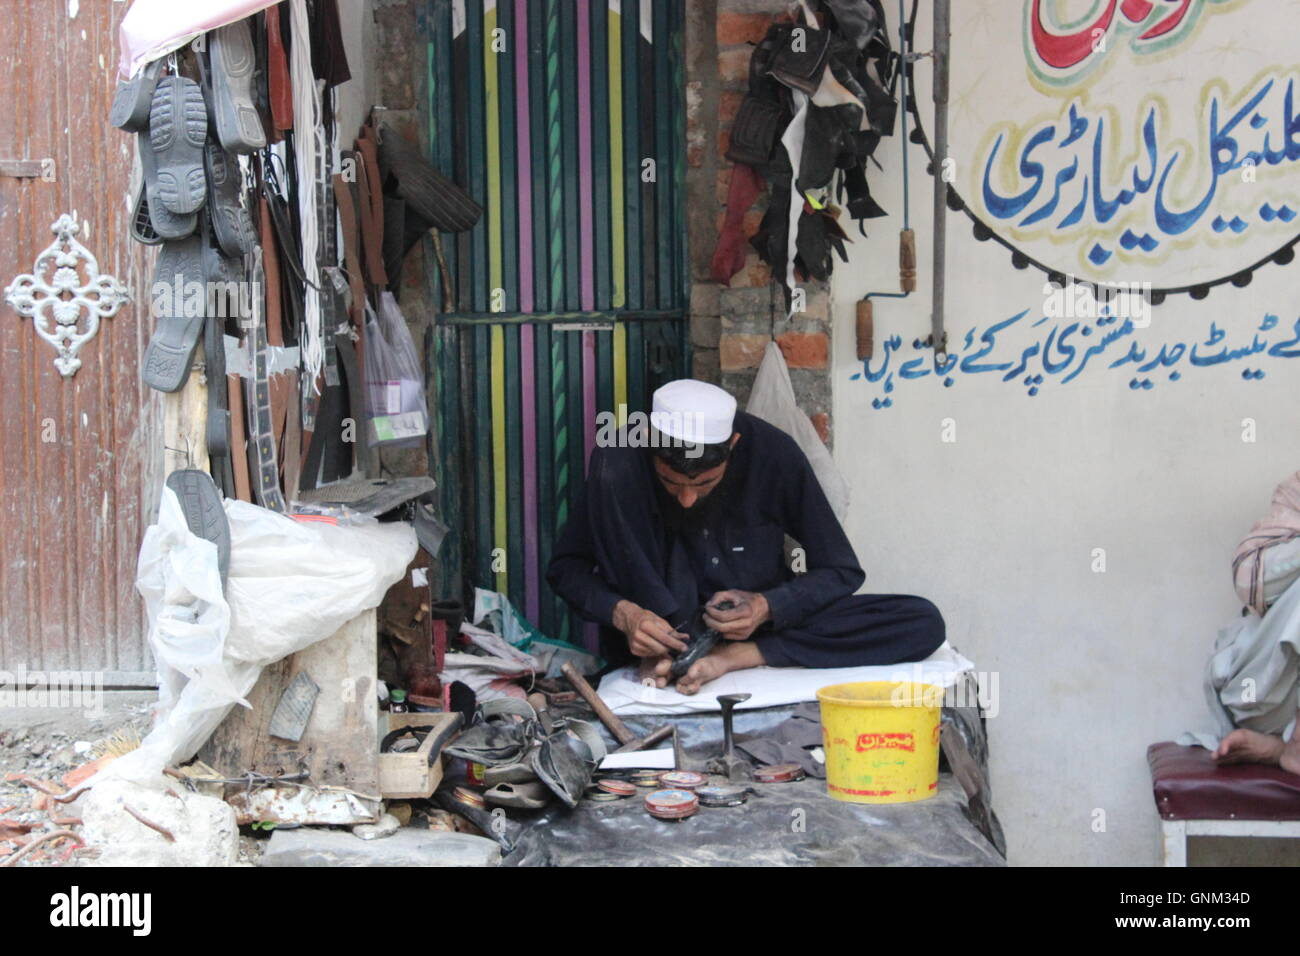 A picture of a shoe maker/ cobbler at work, he is mending shoes in his makeshift shop in a rural area. Stock Photo